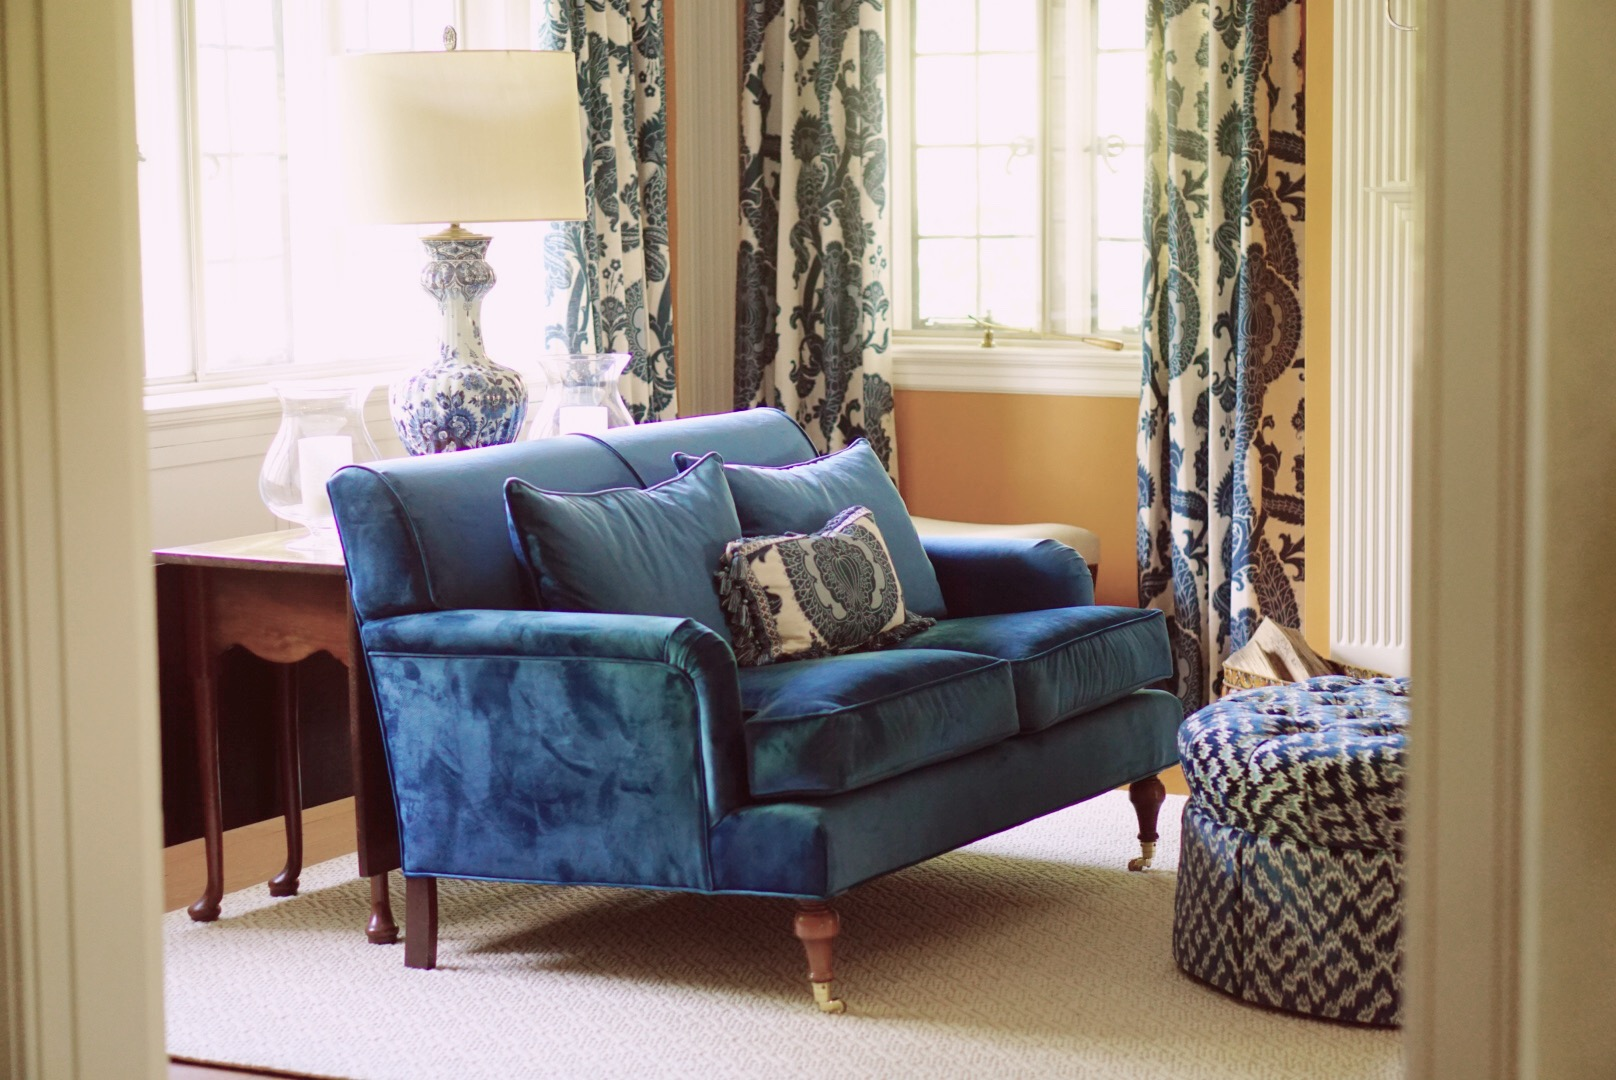 Living room with dark blue sofa and a lamp on the table